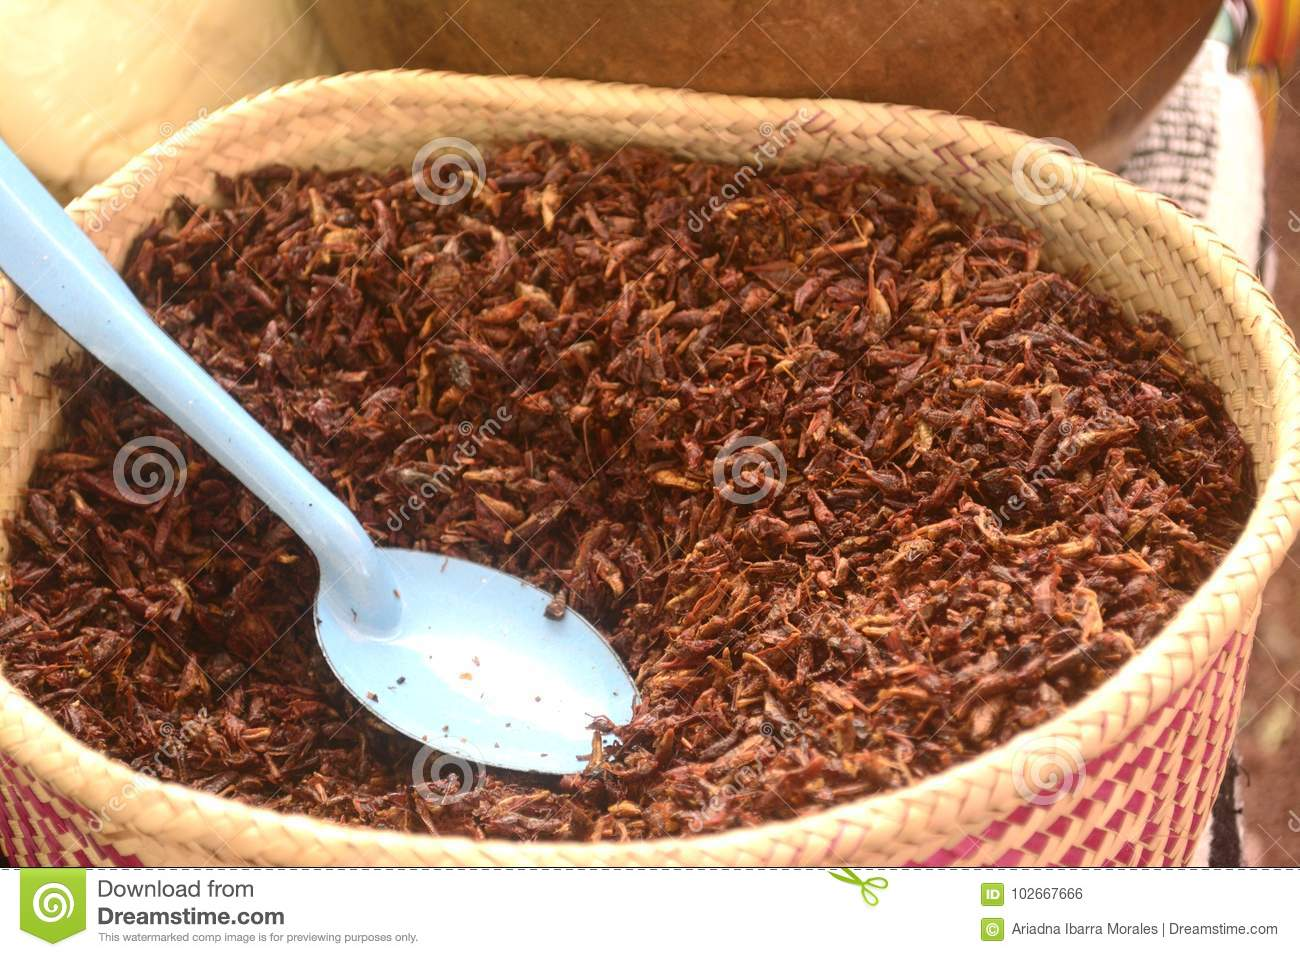 Grasshopers Fried For Sale In A Mexican Local Market, Delicious Insect Food Stock Photo